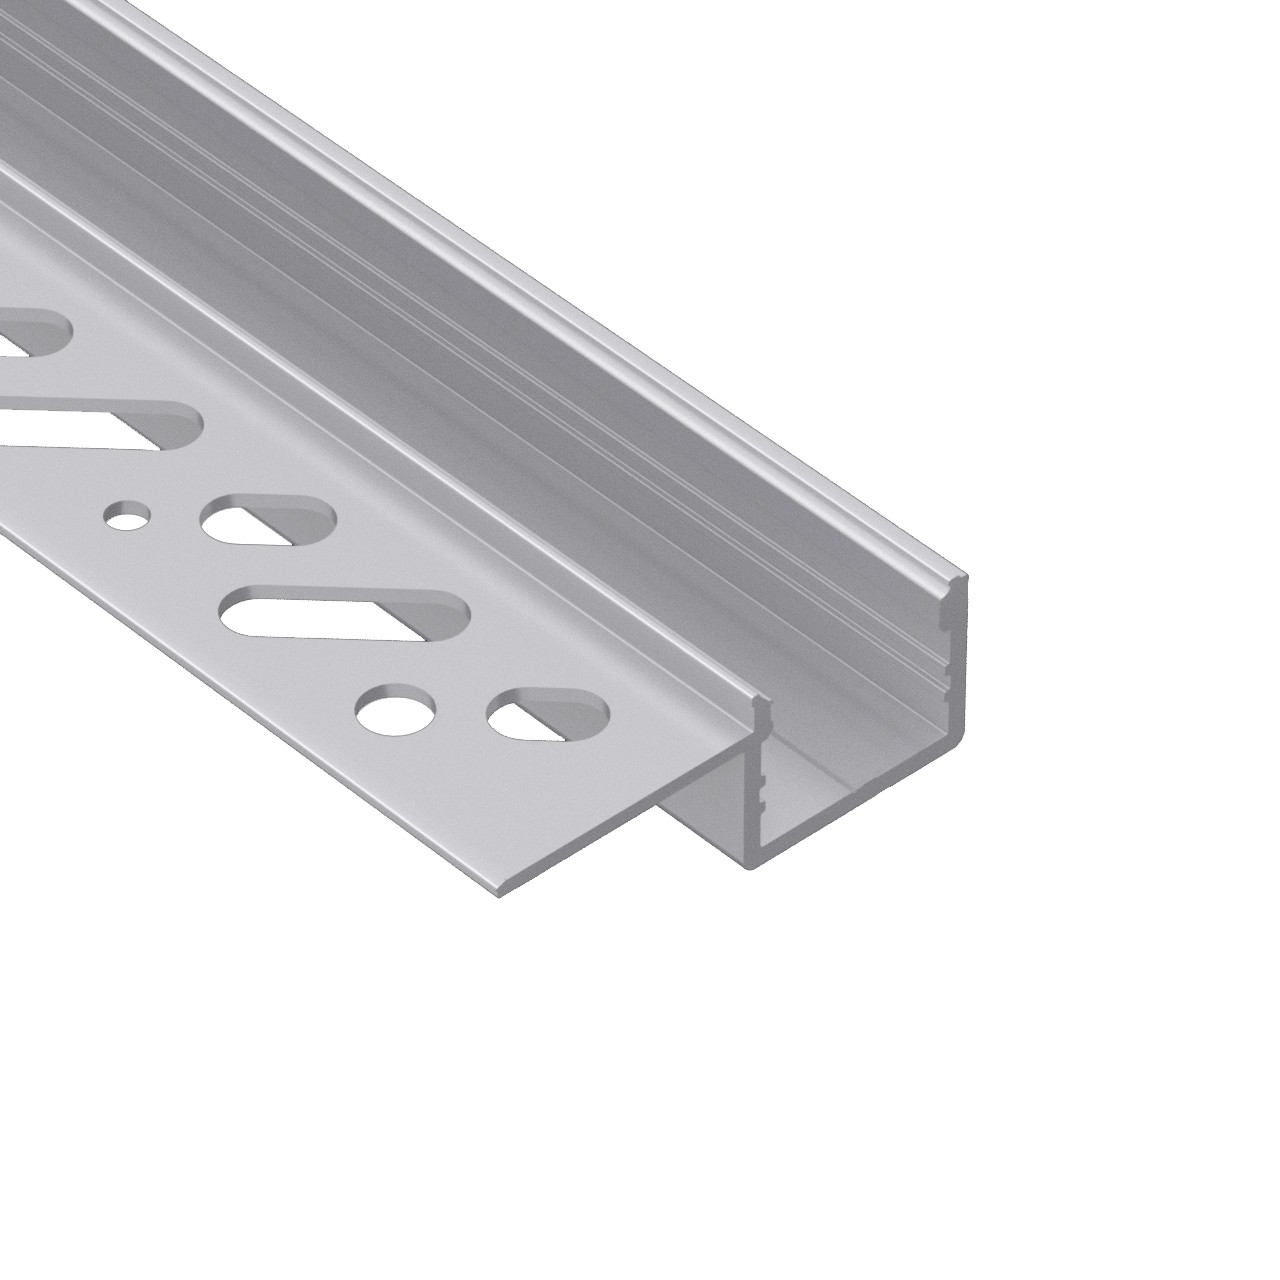 CT5S Trimless Aluminium Extrusions for recessing into plasterboard edge 38.8x13.6mm